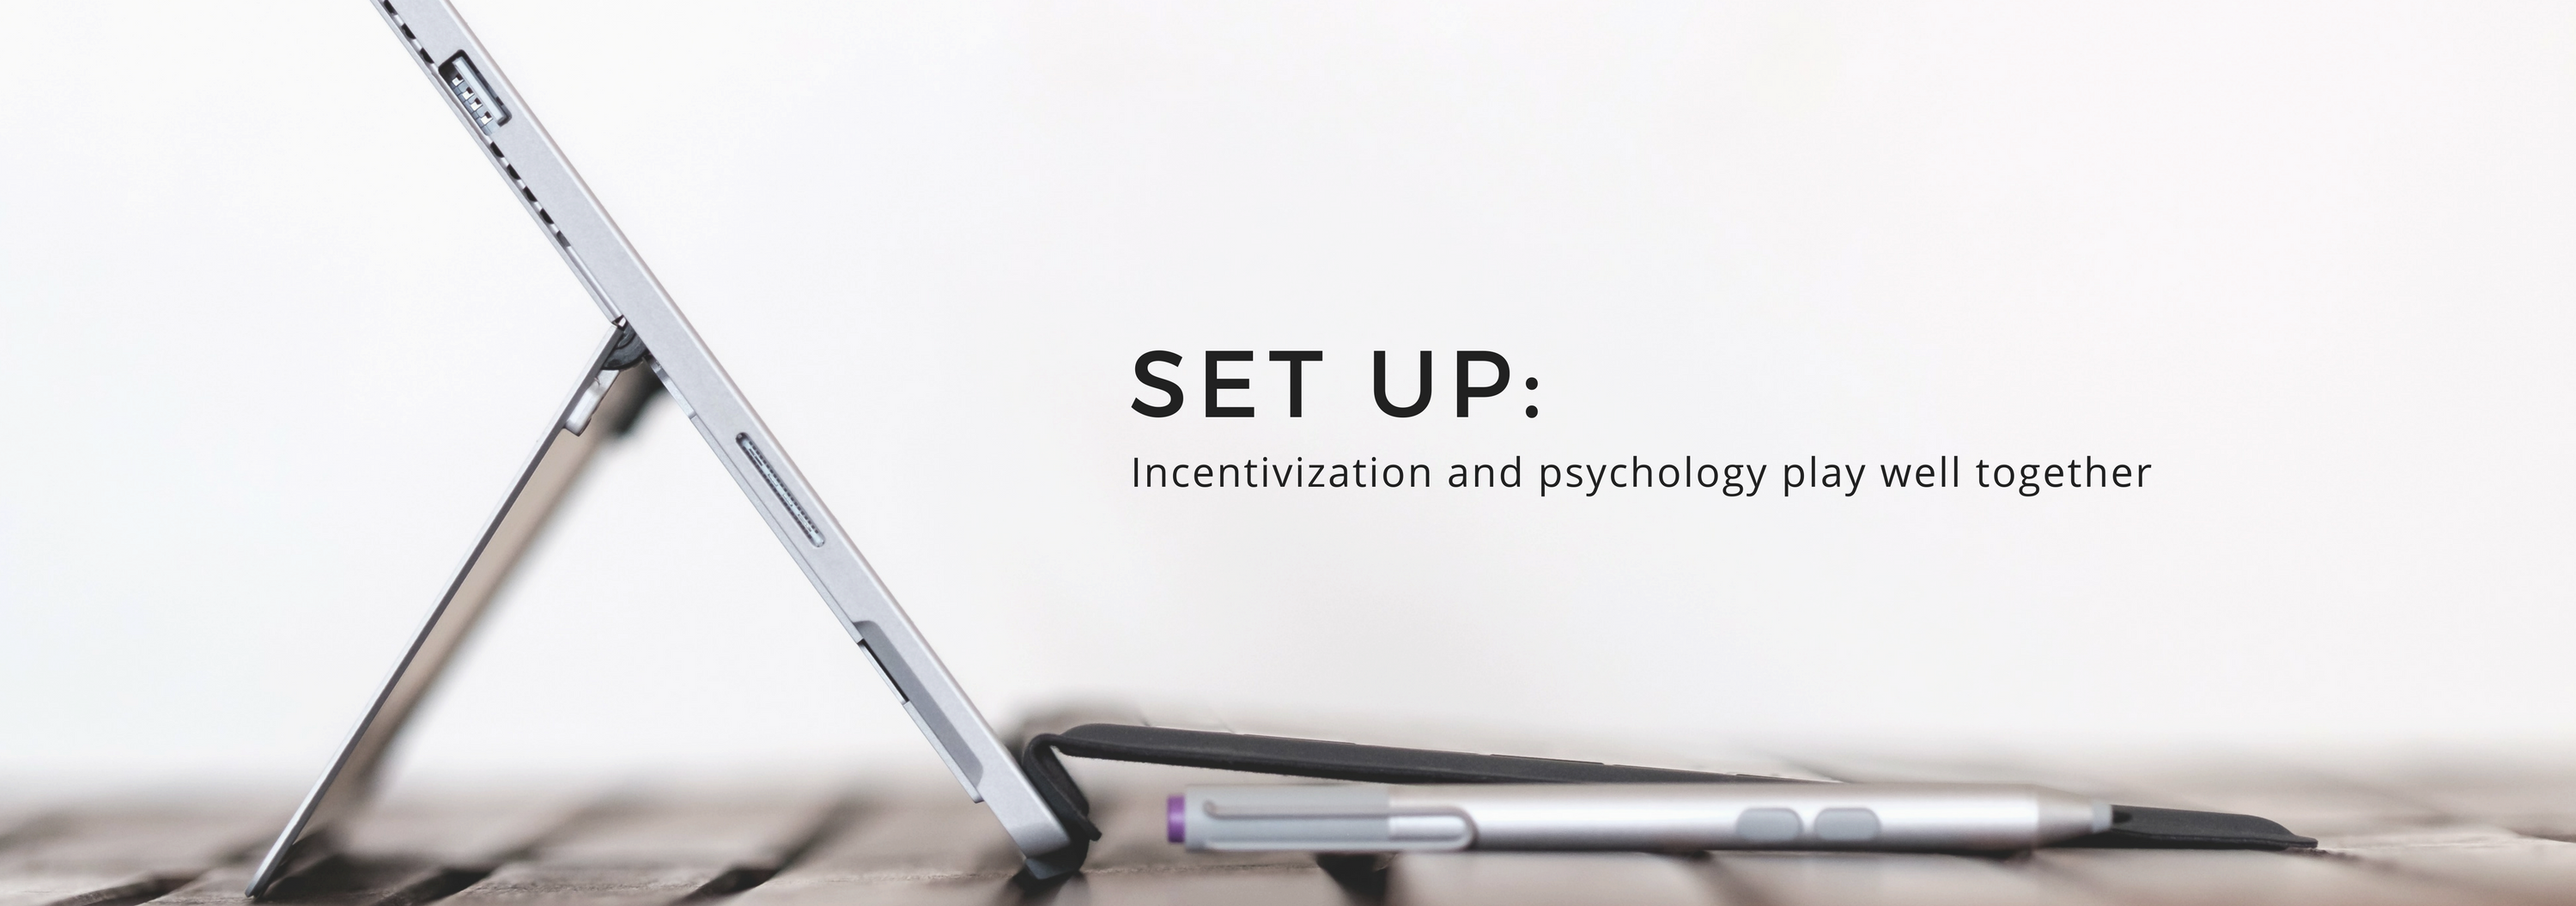 incentivization-and-psychology-play-well-together